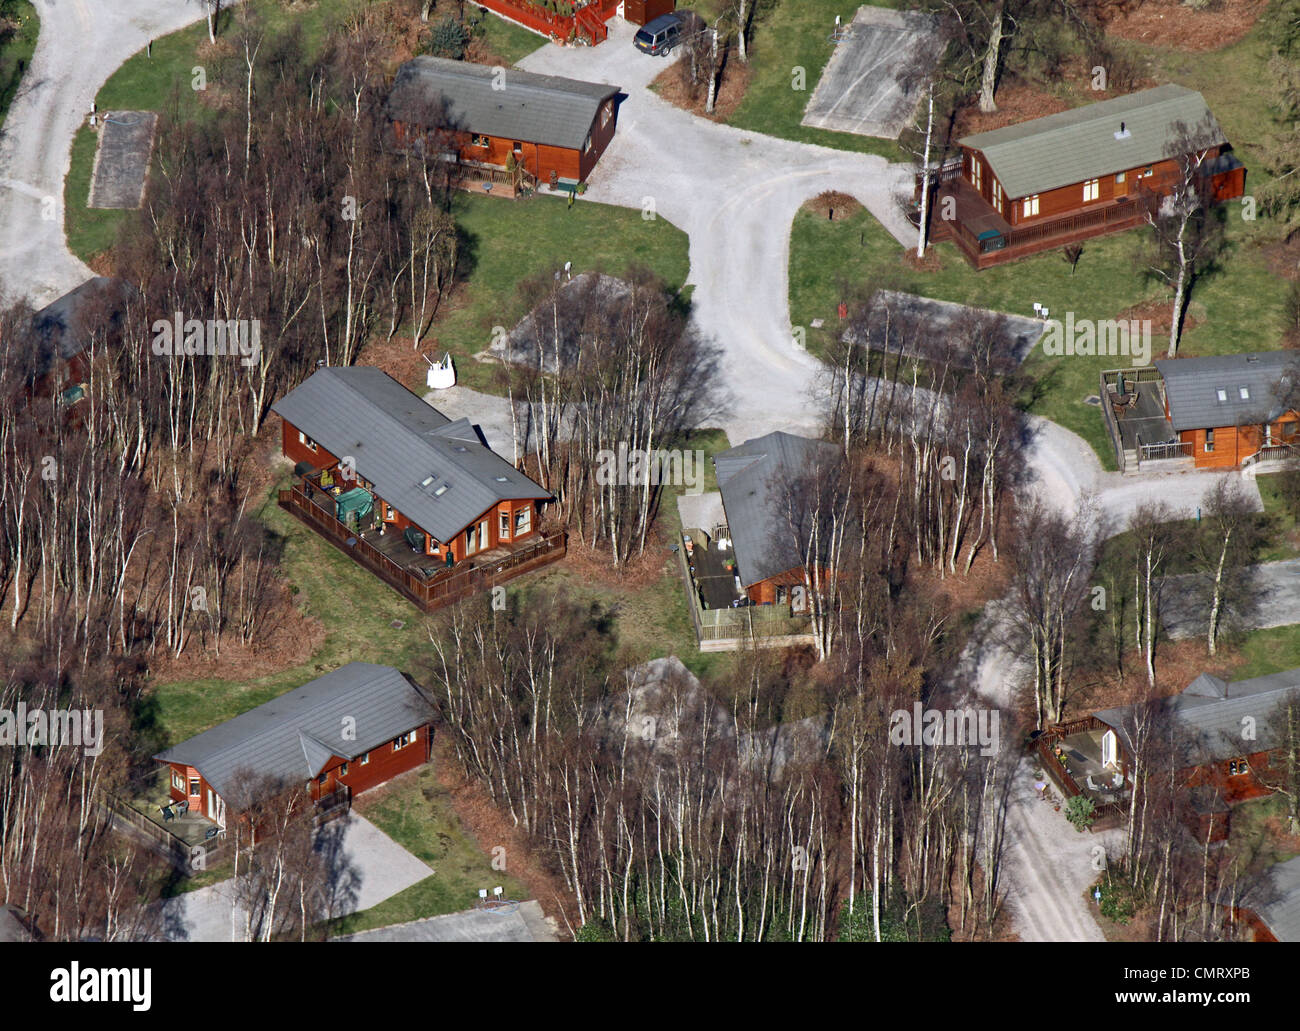 aerial view of log cabins - Stock Image